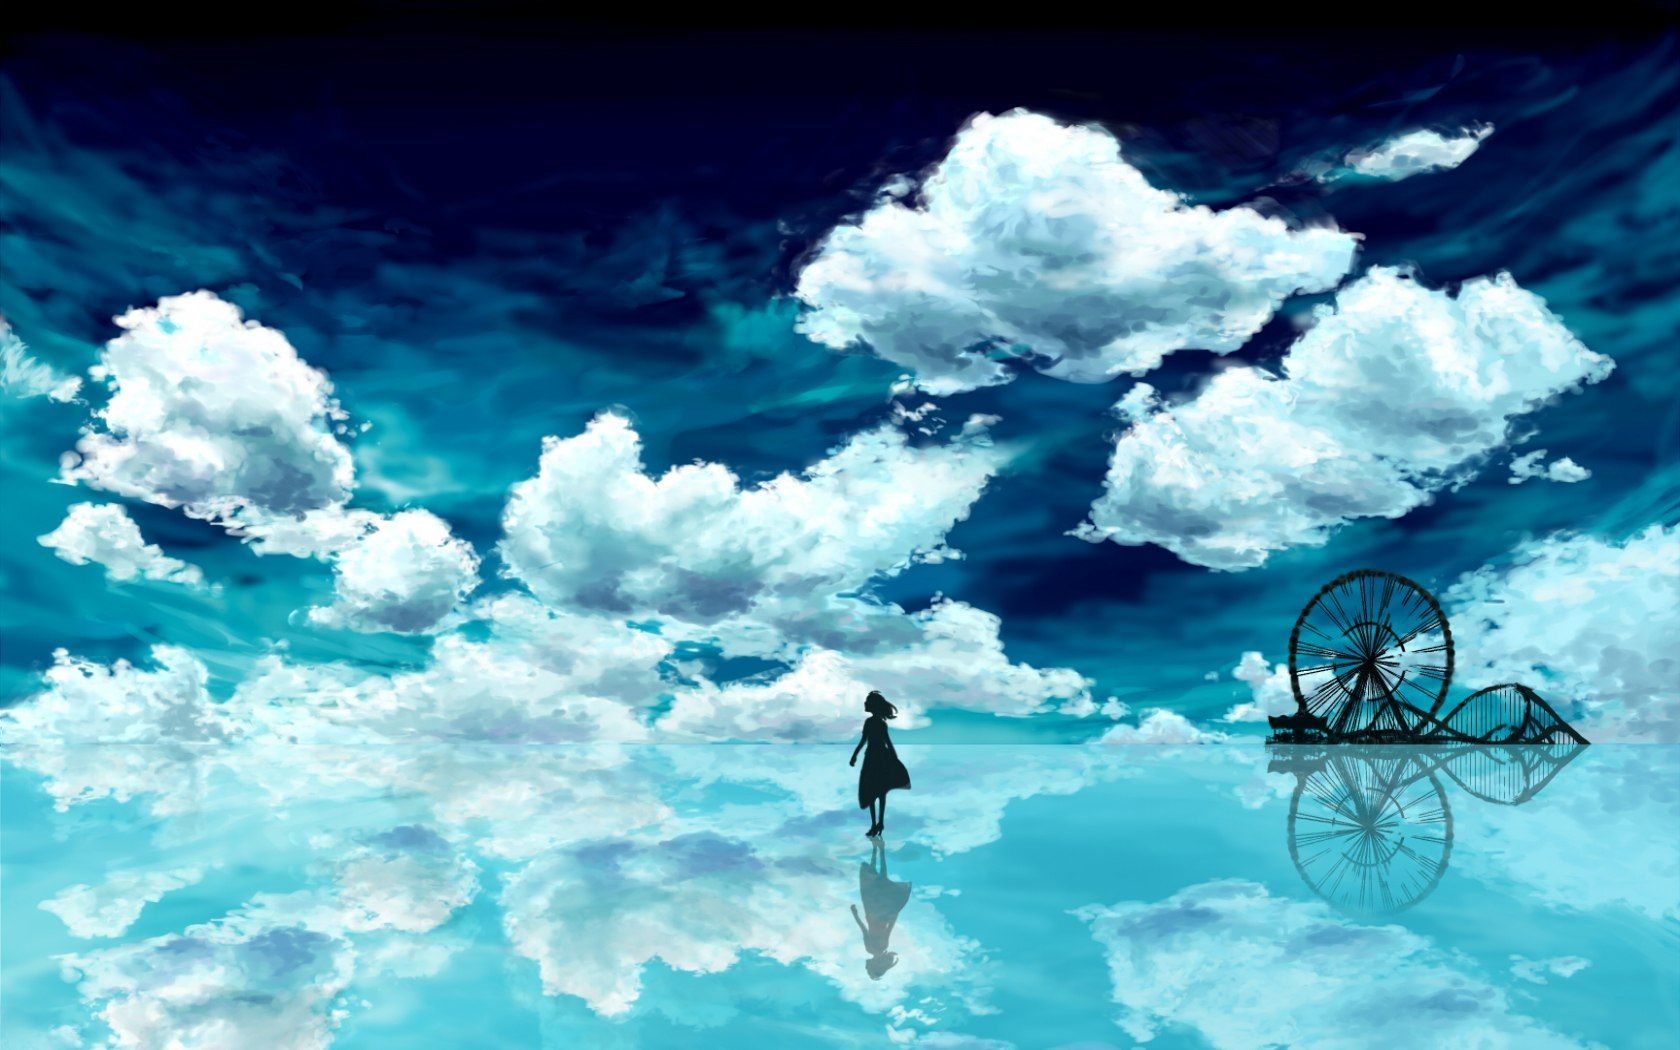 Blue Anime Scenery Wallpapers Top Free Blue Anime Scenery